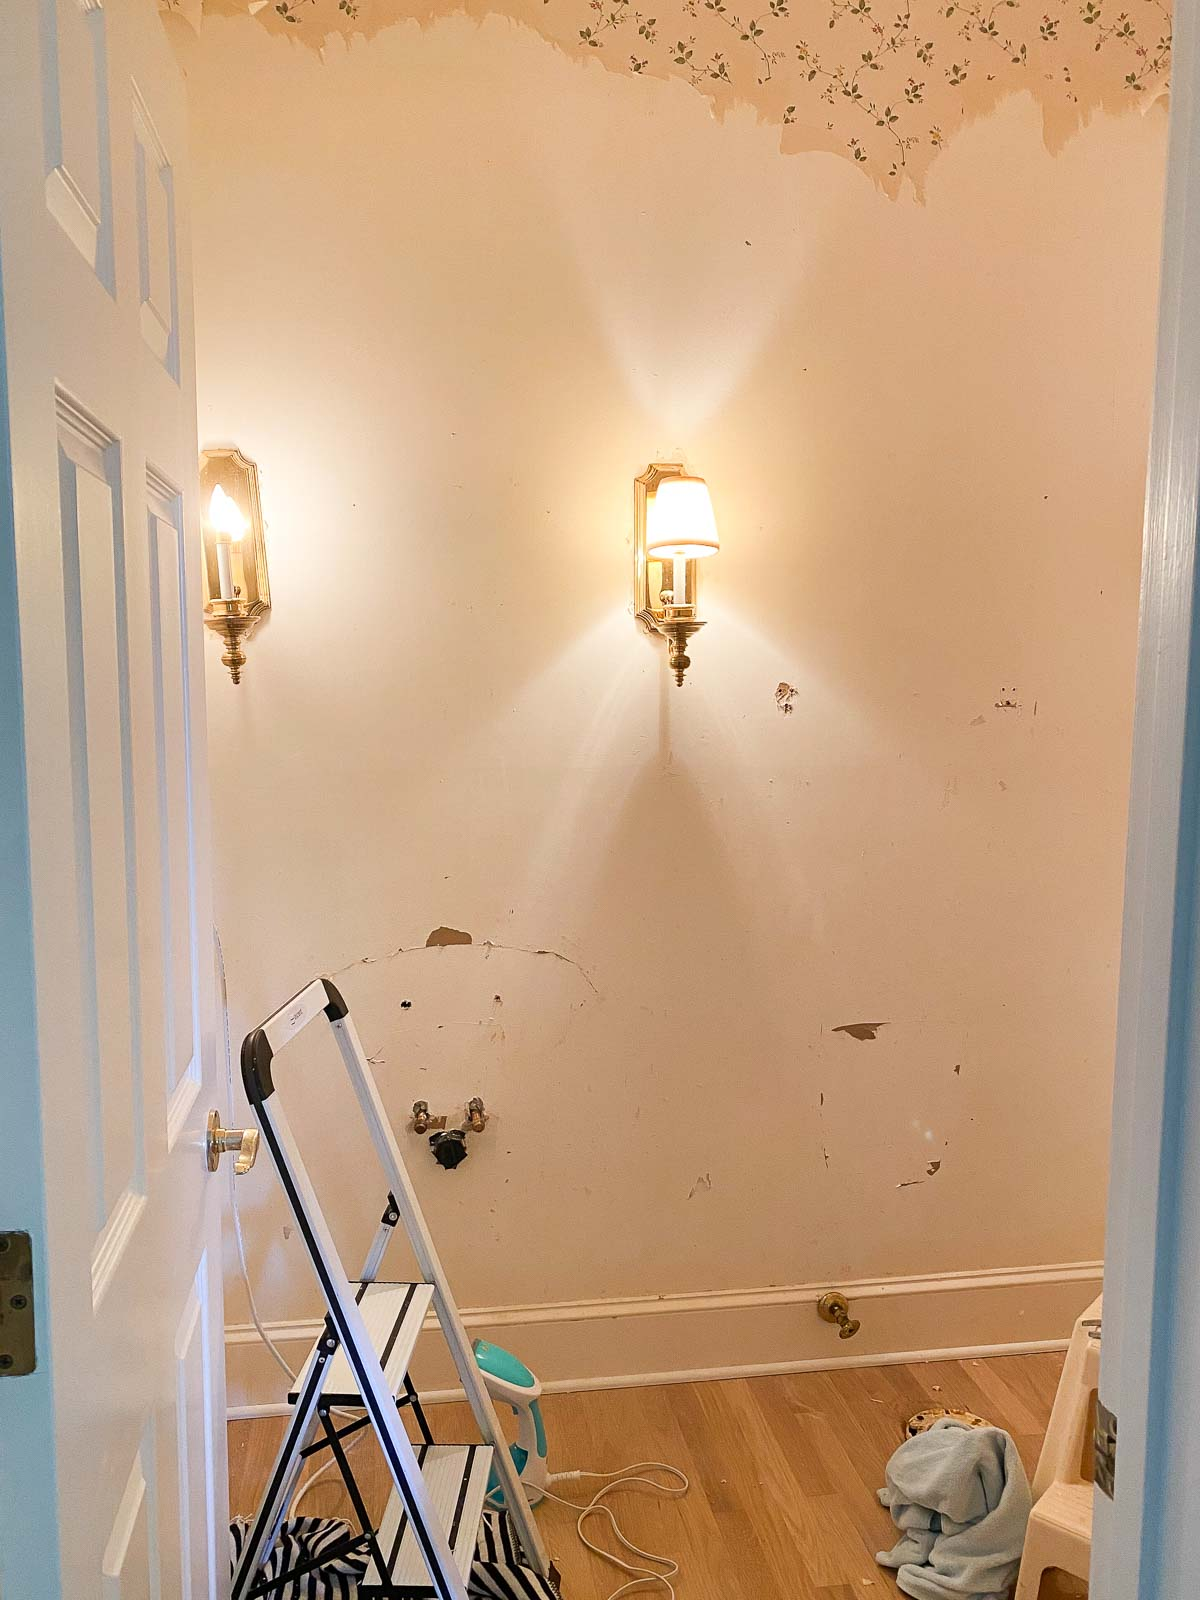 Removing wallpaper in our powder room